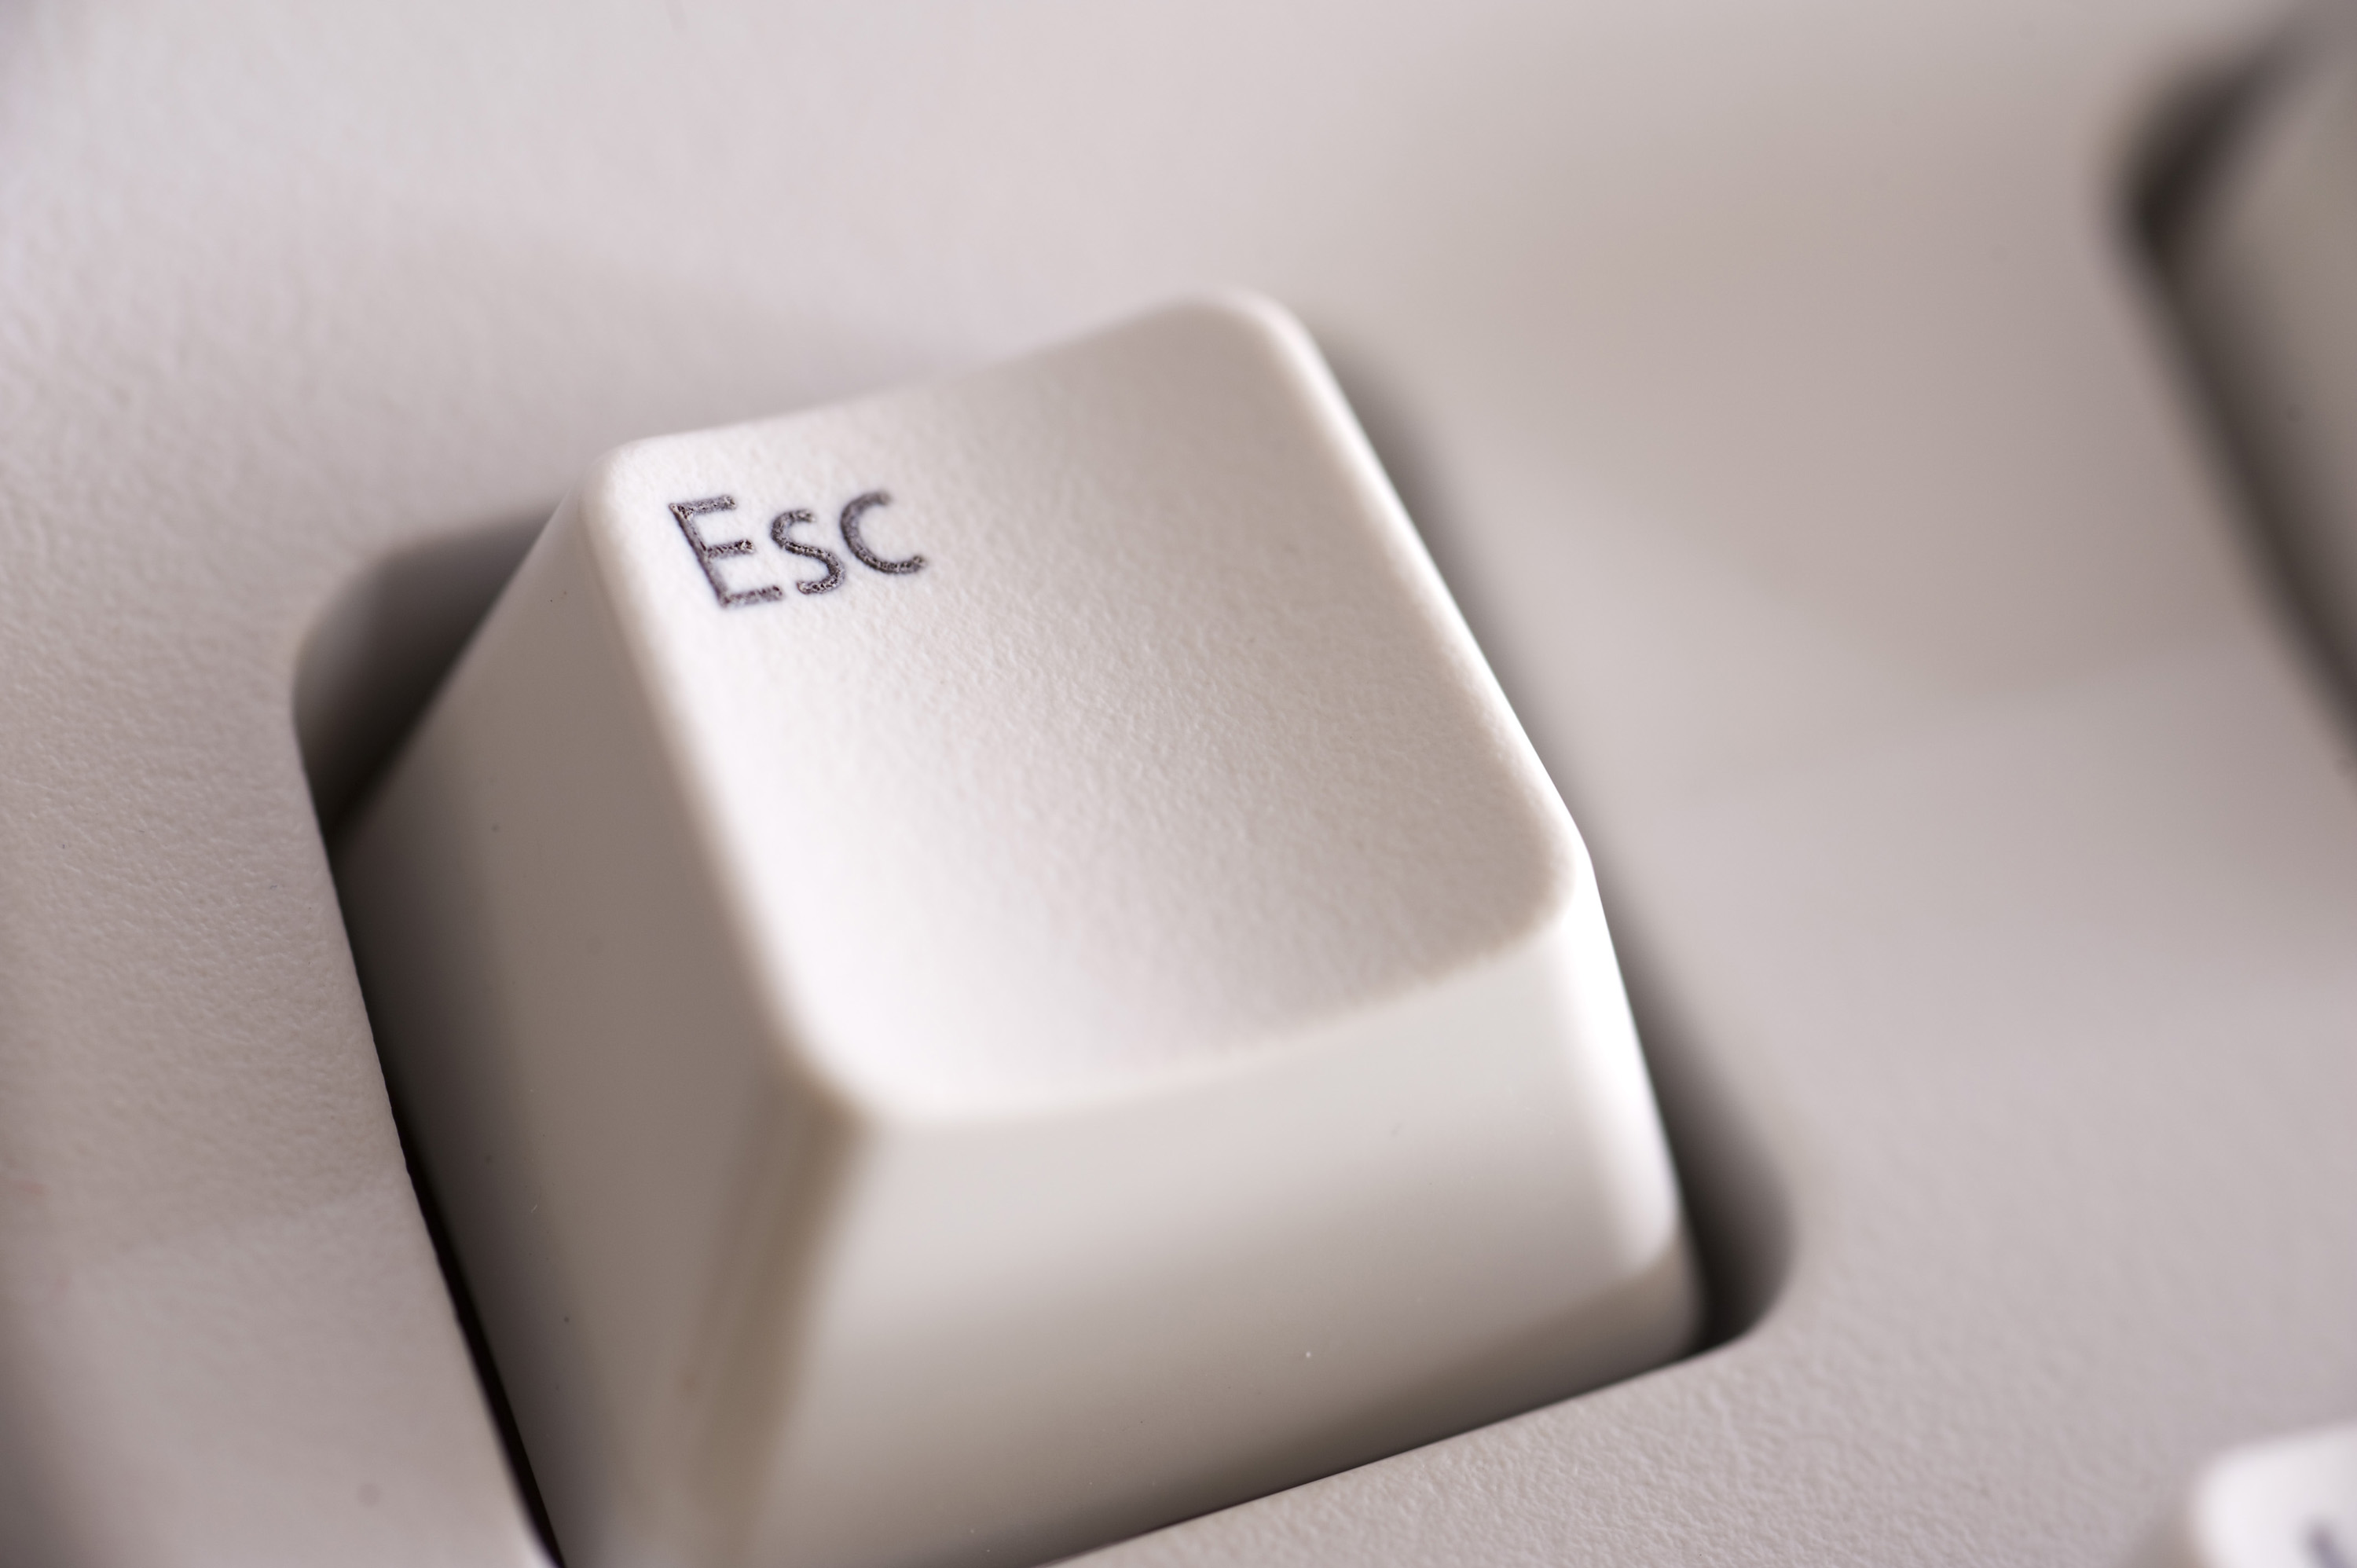 Close Up On The Escape Key On A Computer Keyboard